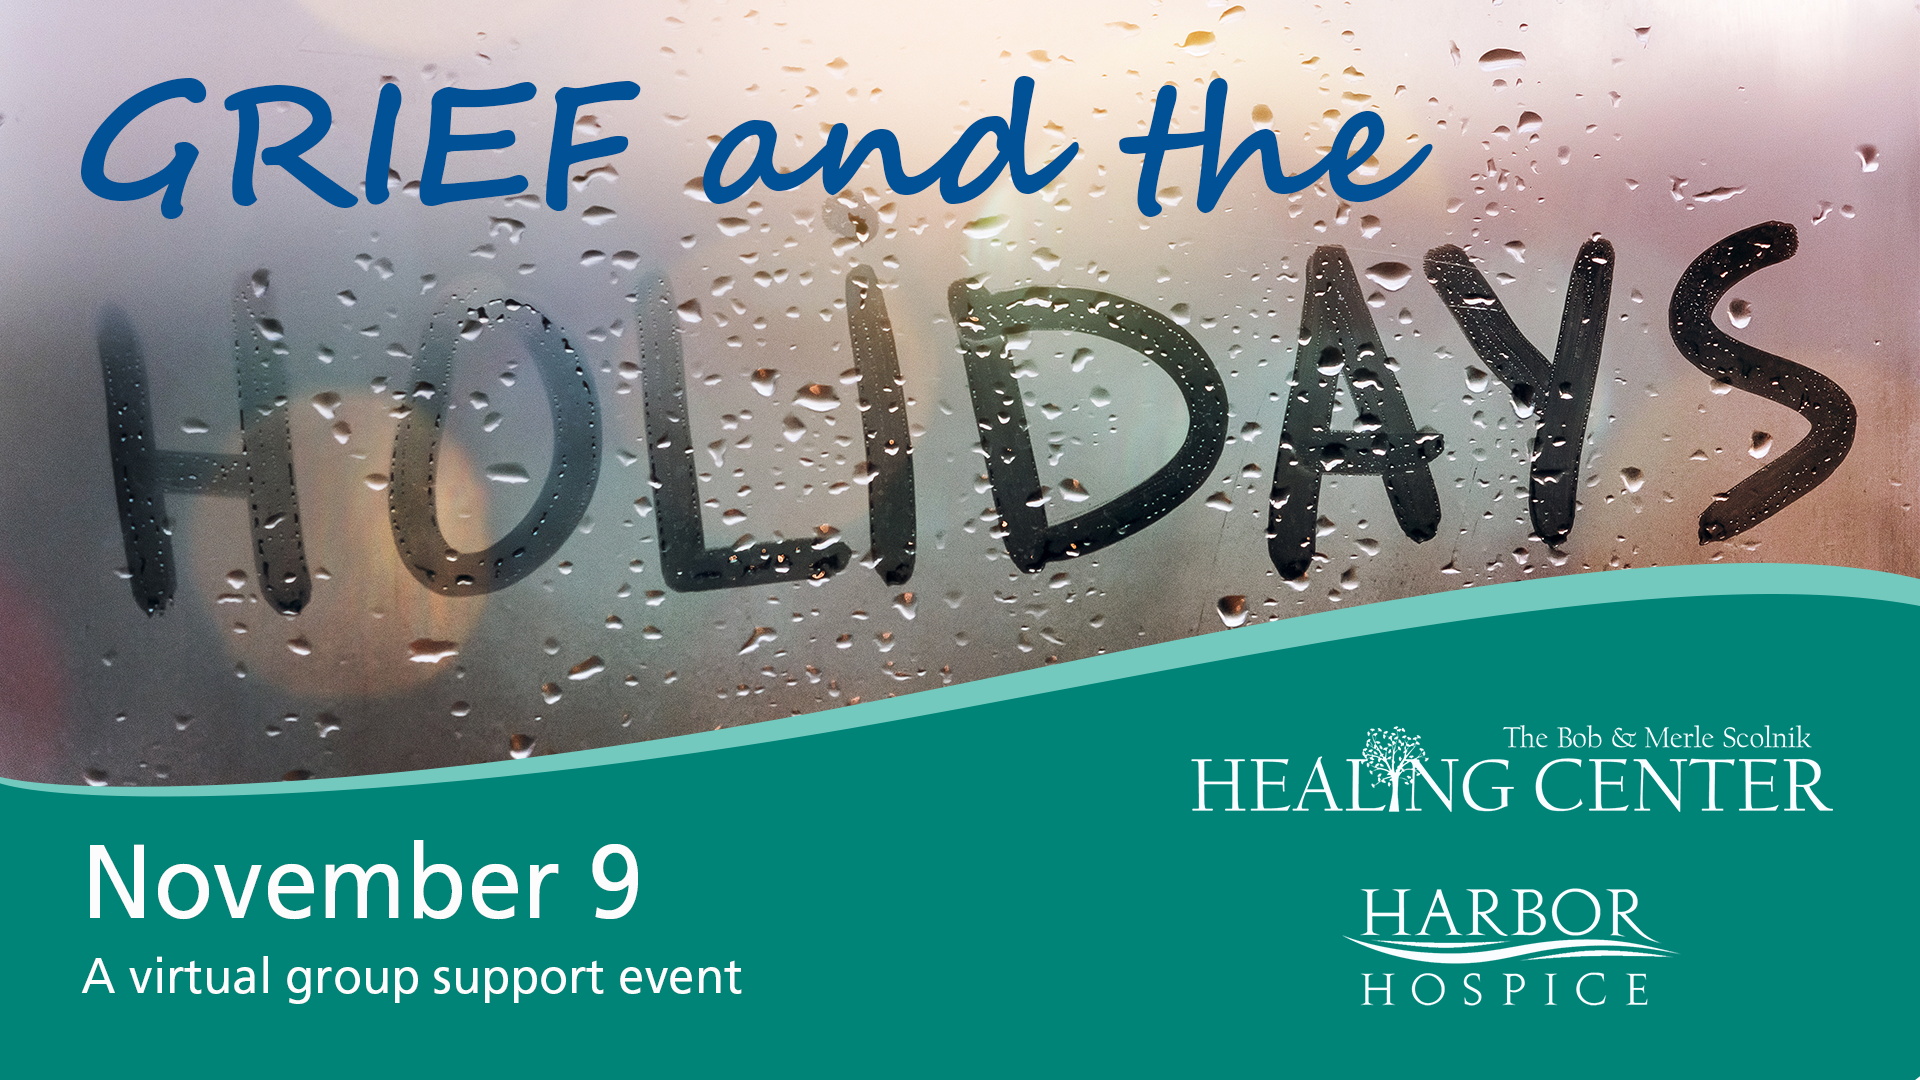 GriefandtheHolidays2021 - Grief and the Holidays - a virtual grief support event